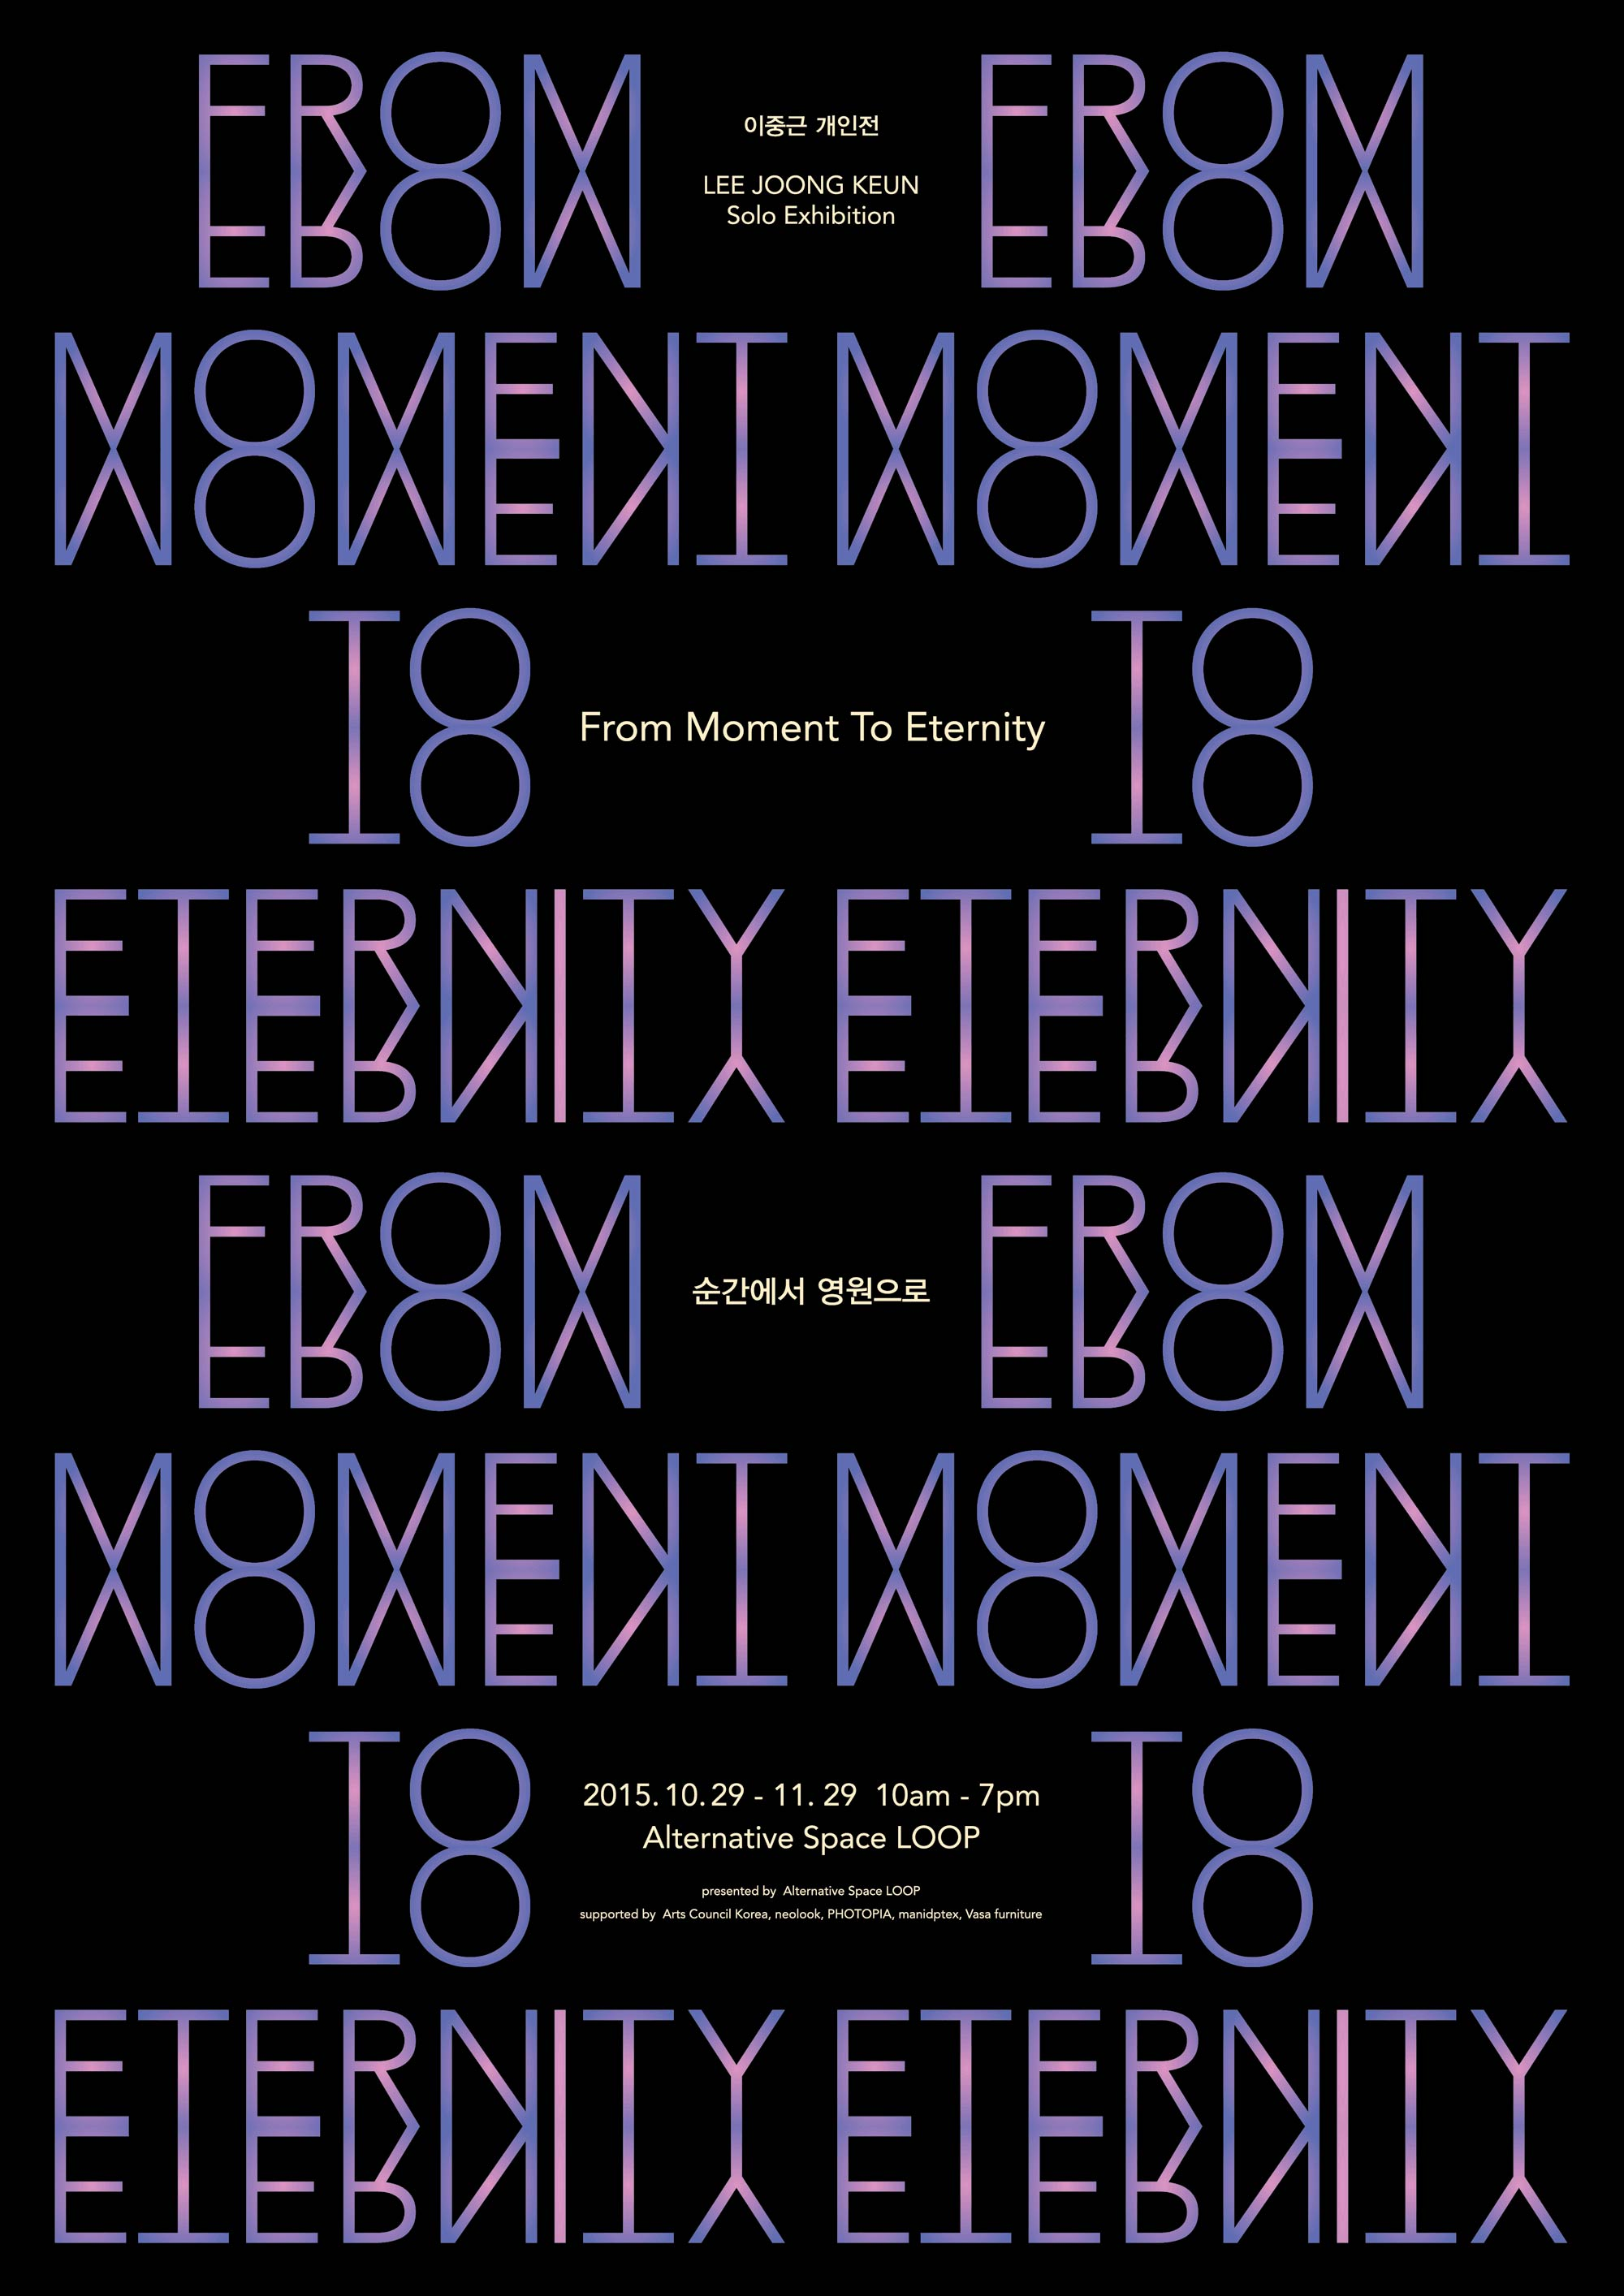 Joong Keun Lee Solo Exhibition: From Moment To Eternity